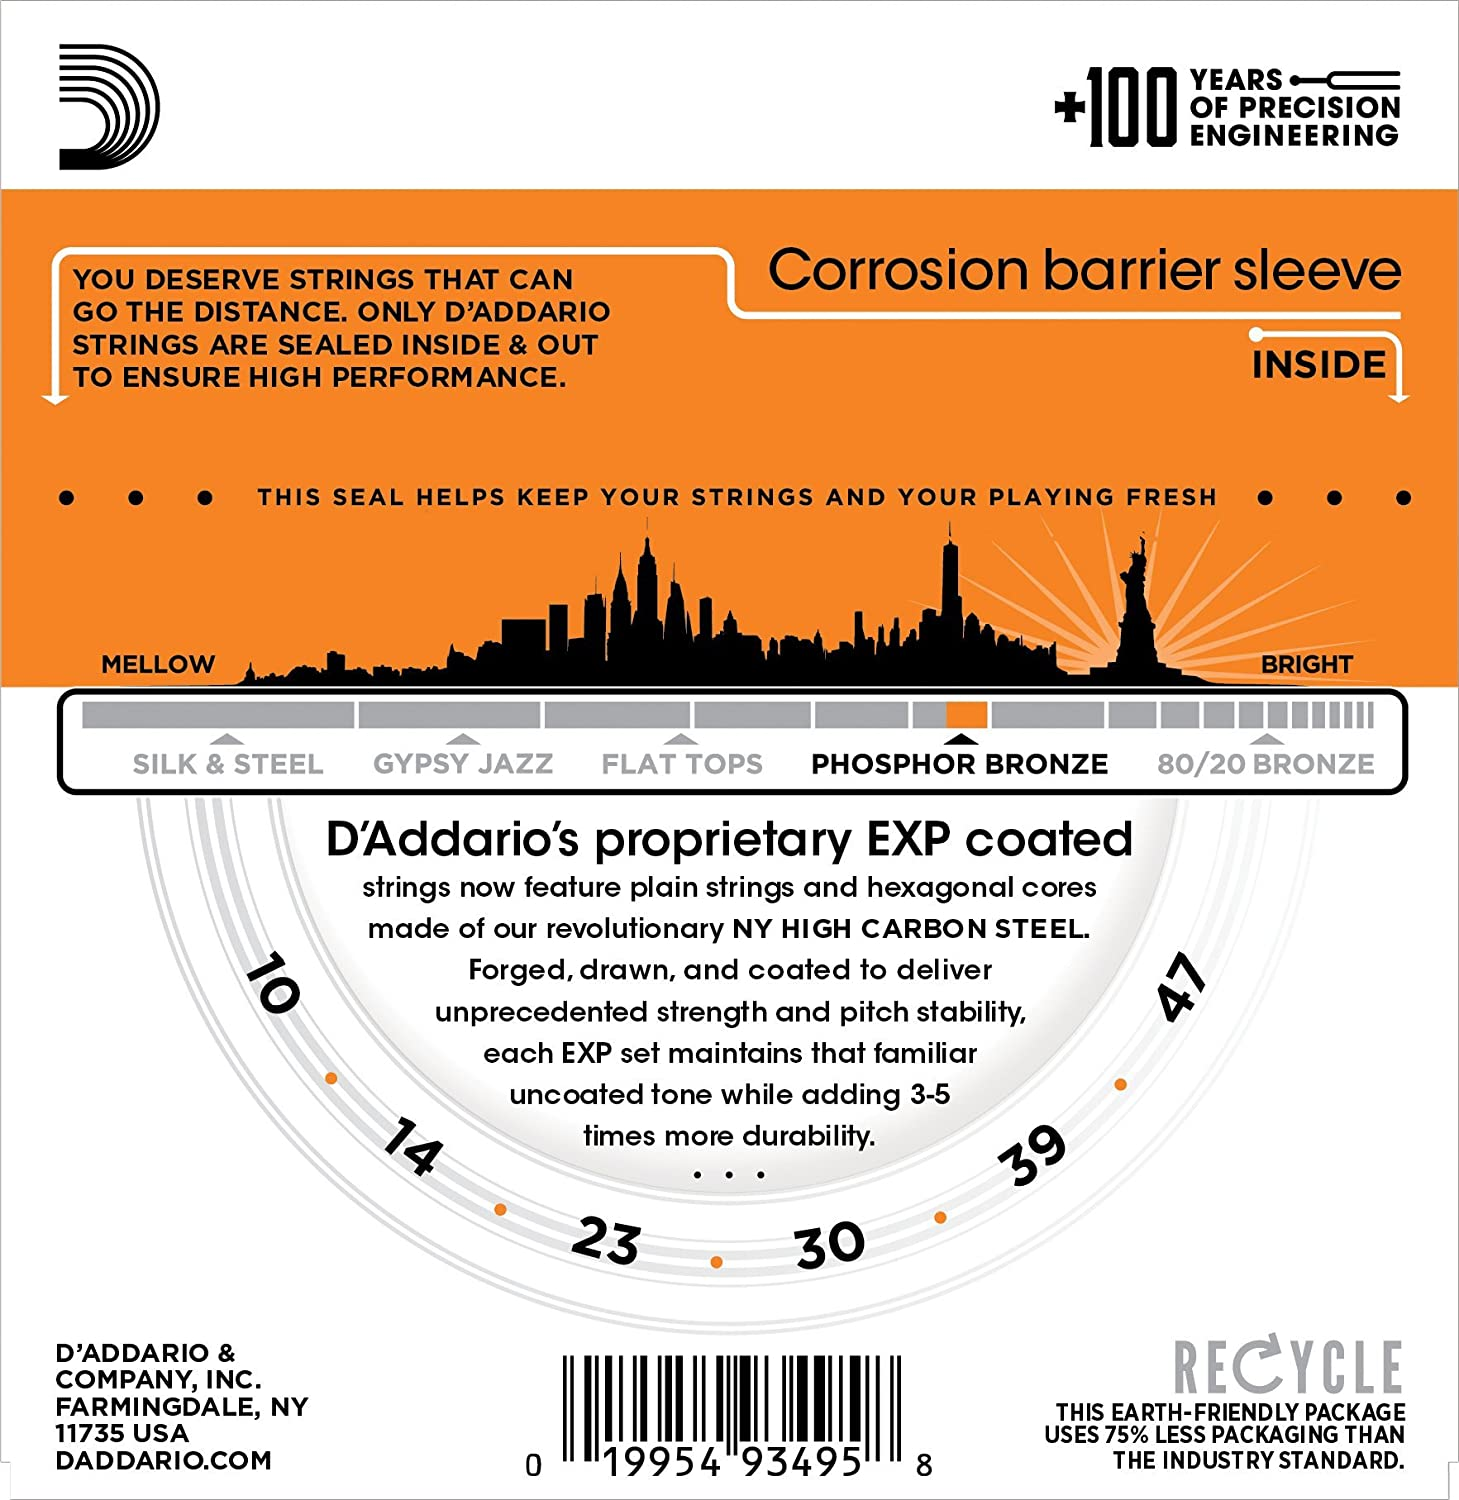 D/'Addario EXP38 Coated Phosphor Bronze Acoustic Guitar Strings Offers a Warm With NY Steel for Strength and Pitch Stability Light Bright and Well-Balanced Acoustic Tone and 4x Longer Life 10-47